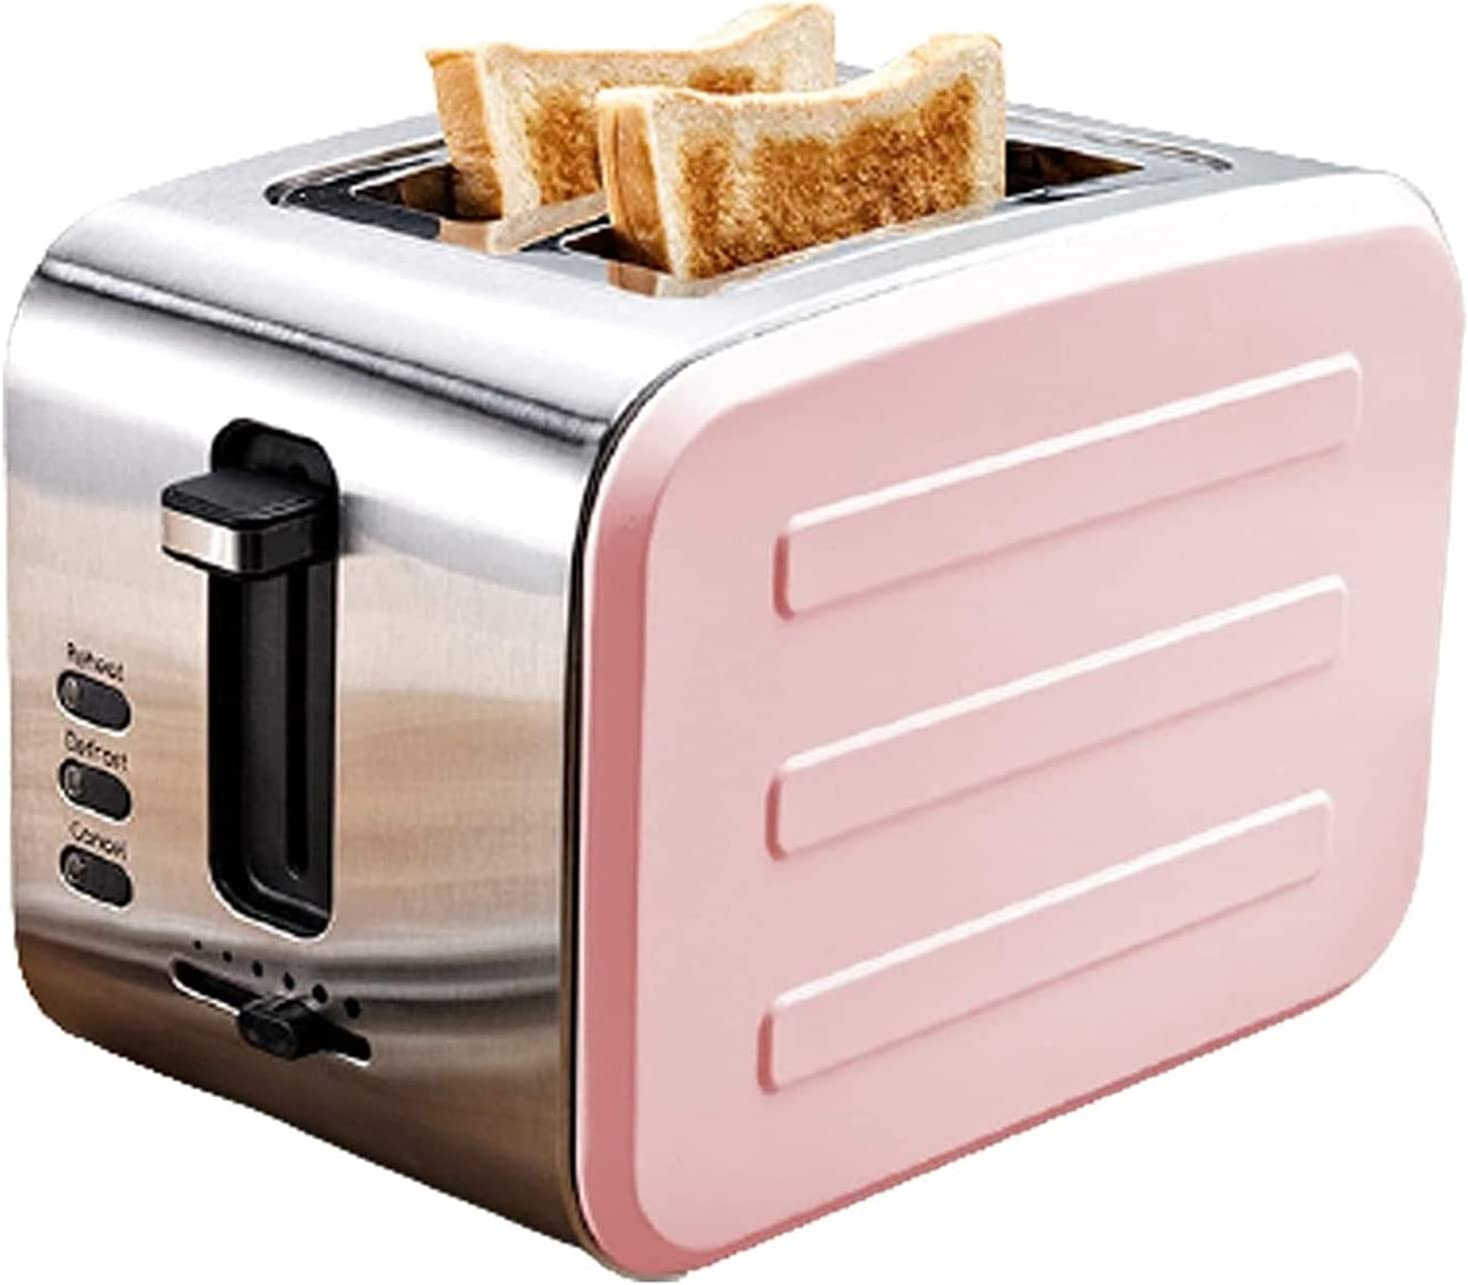 Toasters Automatic Mini Bread Machine Variable 6 Oven NEW before selling ☆ Shipping included Br Toaster